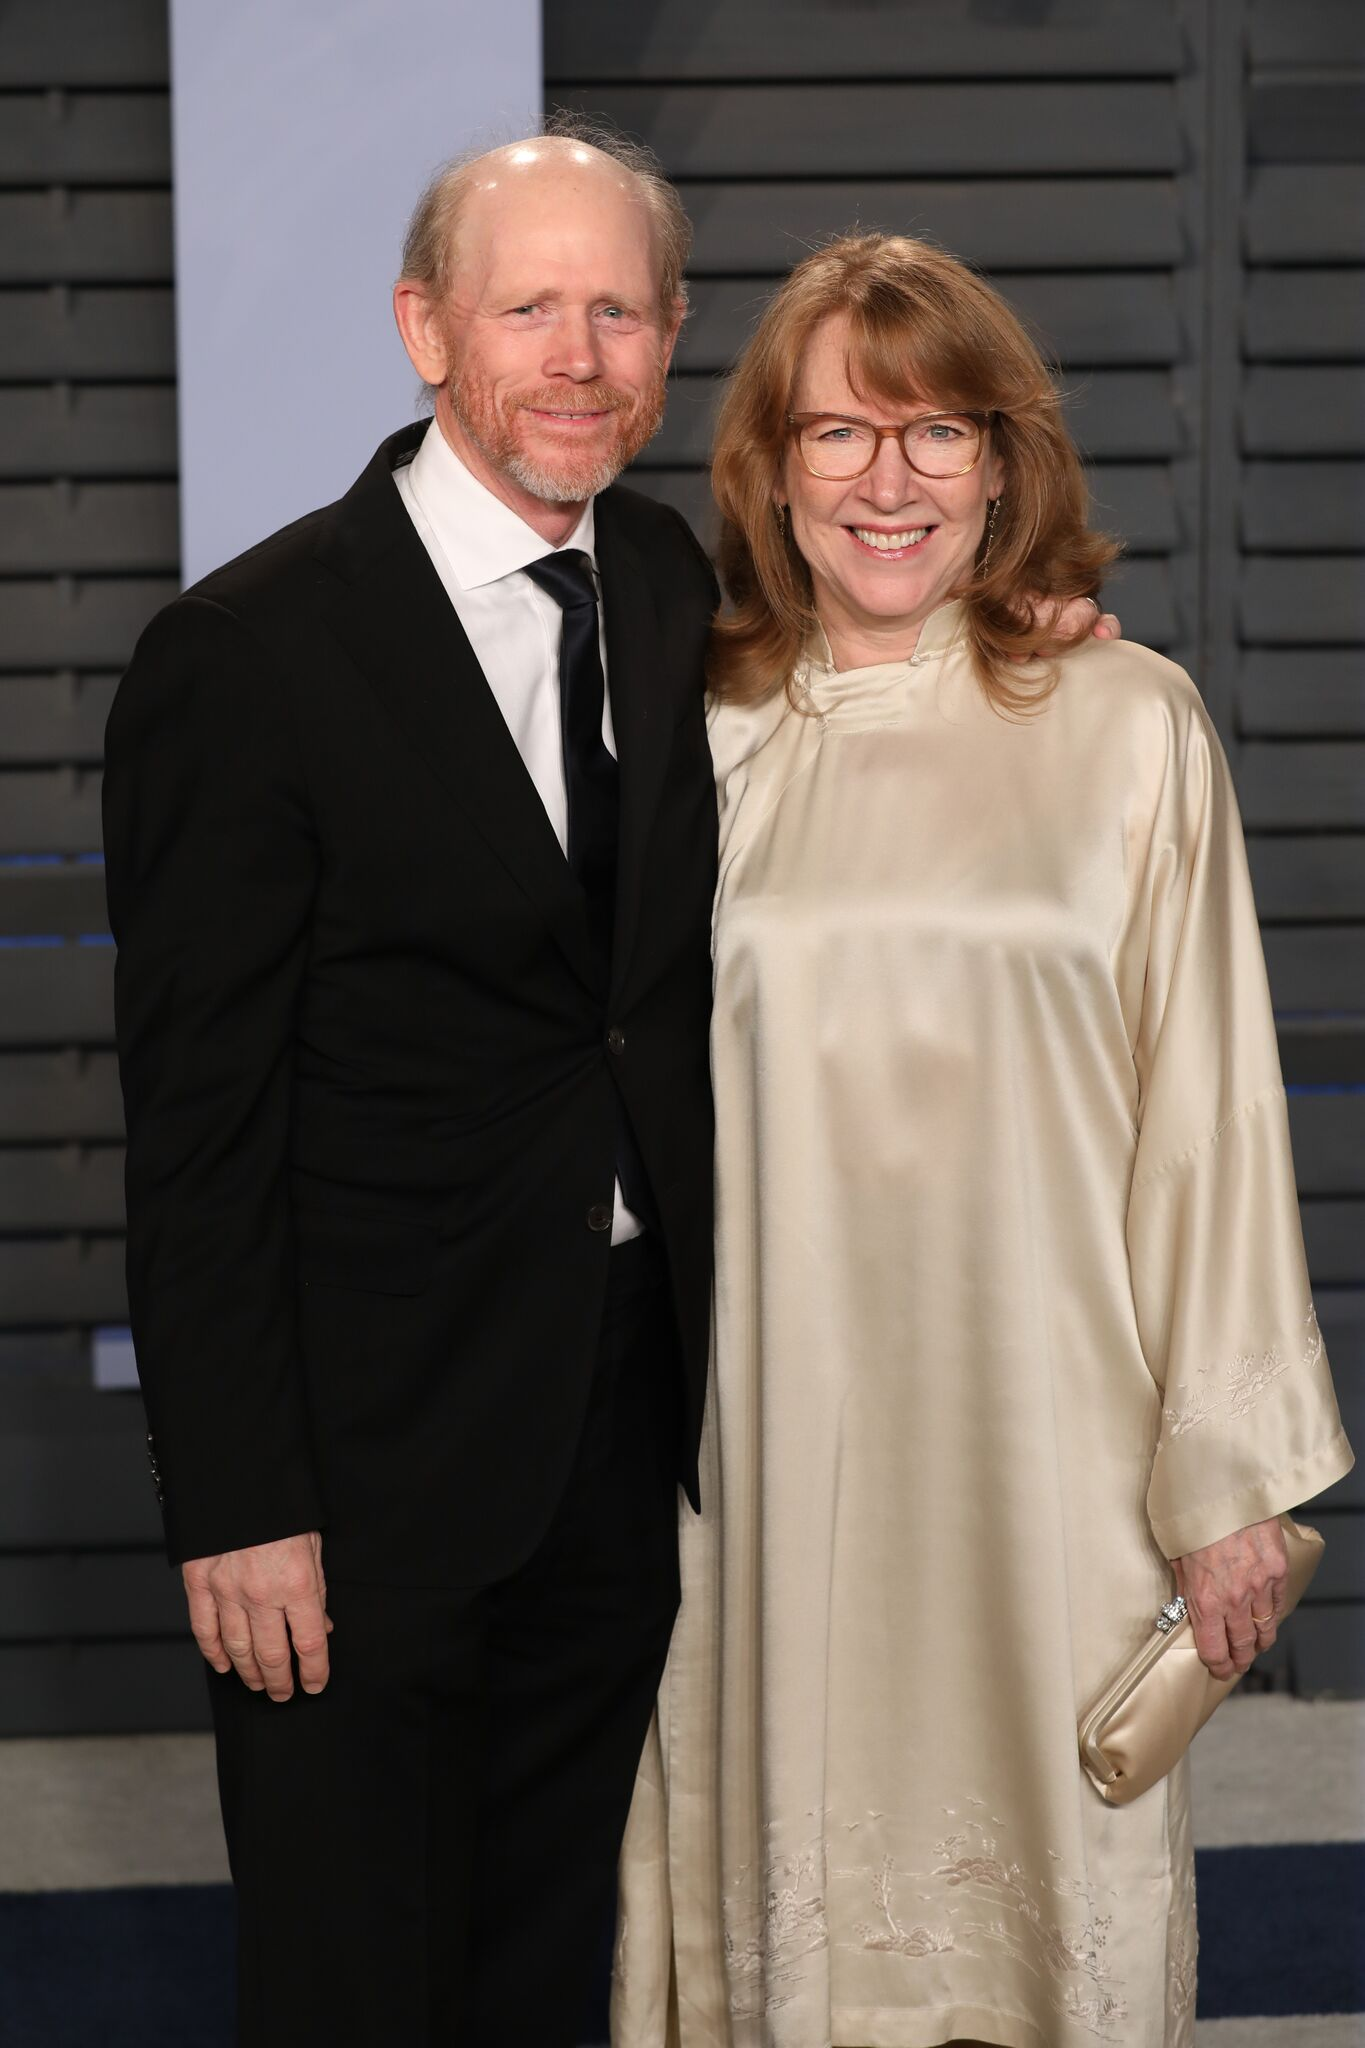 Ron Howard and Cheryl Howard attend the 2018 Vanity Fair Oscar Party hosted by Radhika Jones | Getty Images